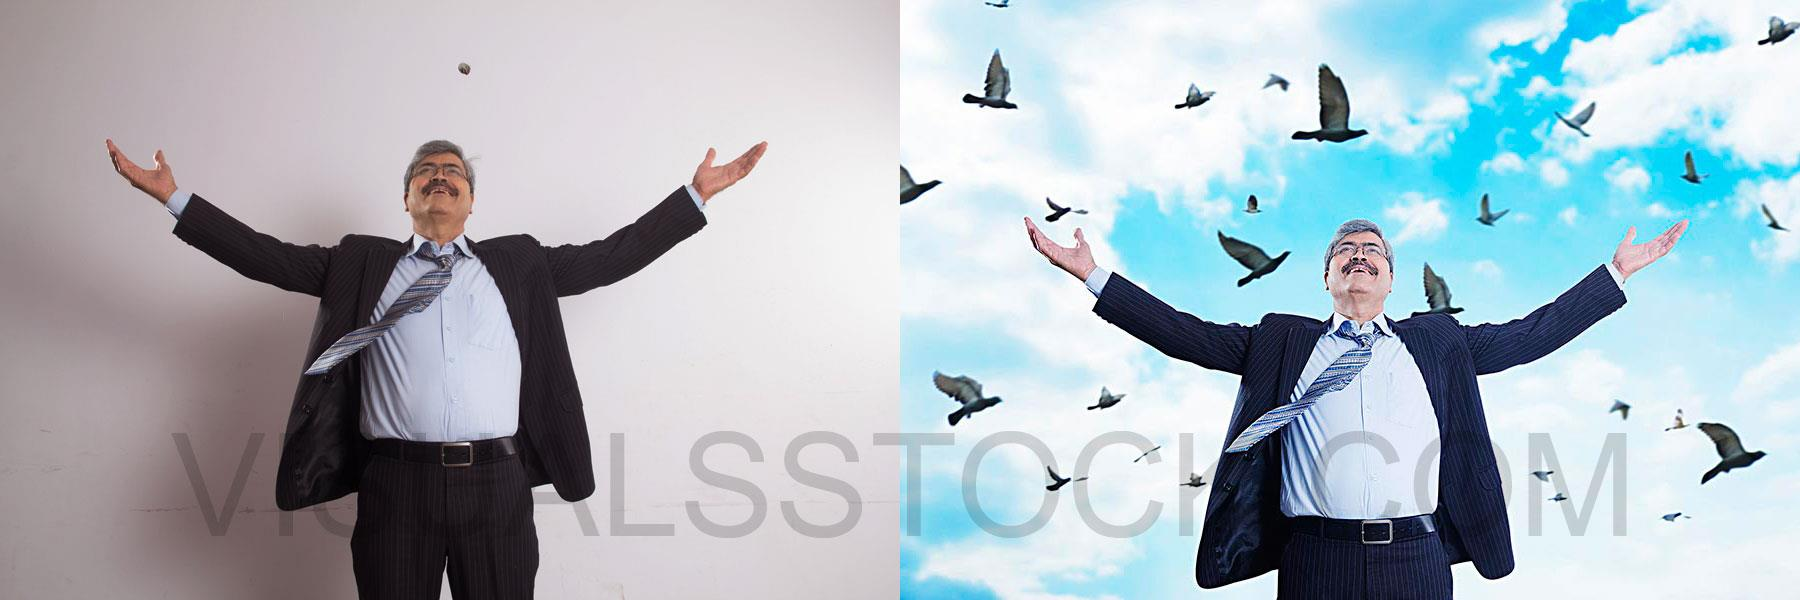 Stock Image Editing Services.   We Are A Best Stock Photo Editing Company. We Have More Than 10 Year Experience In Stock Photo Editing. We Are Giving Stock Photo Retouching For Many Stock Photo Companies All Over World. We Do All Type Of Stock Photo Editing Like Cr2 Image Conversion, Digital Photo Retouching, Background Replacement, Image Keywording Services, Stock Photo Content Writing, Meta Data Content Writing, Beauty Photo Retouching, Stock Photo Manipulation Services And Many More.   Best Stock Photo Retouching Company.